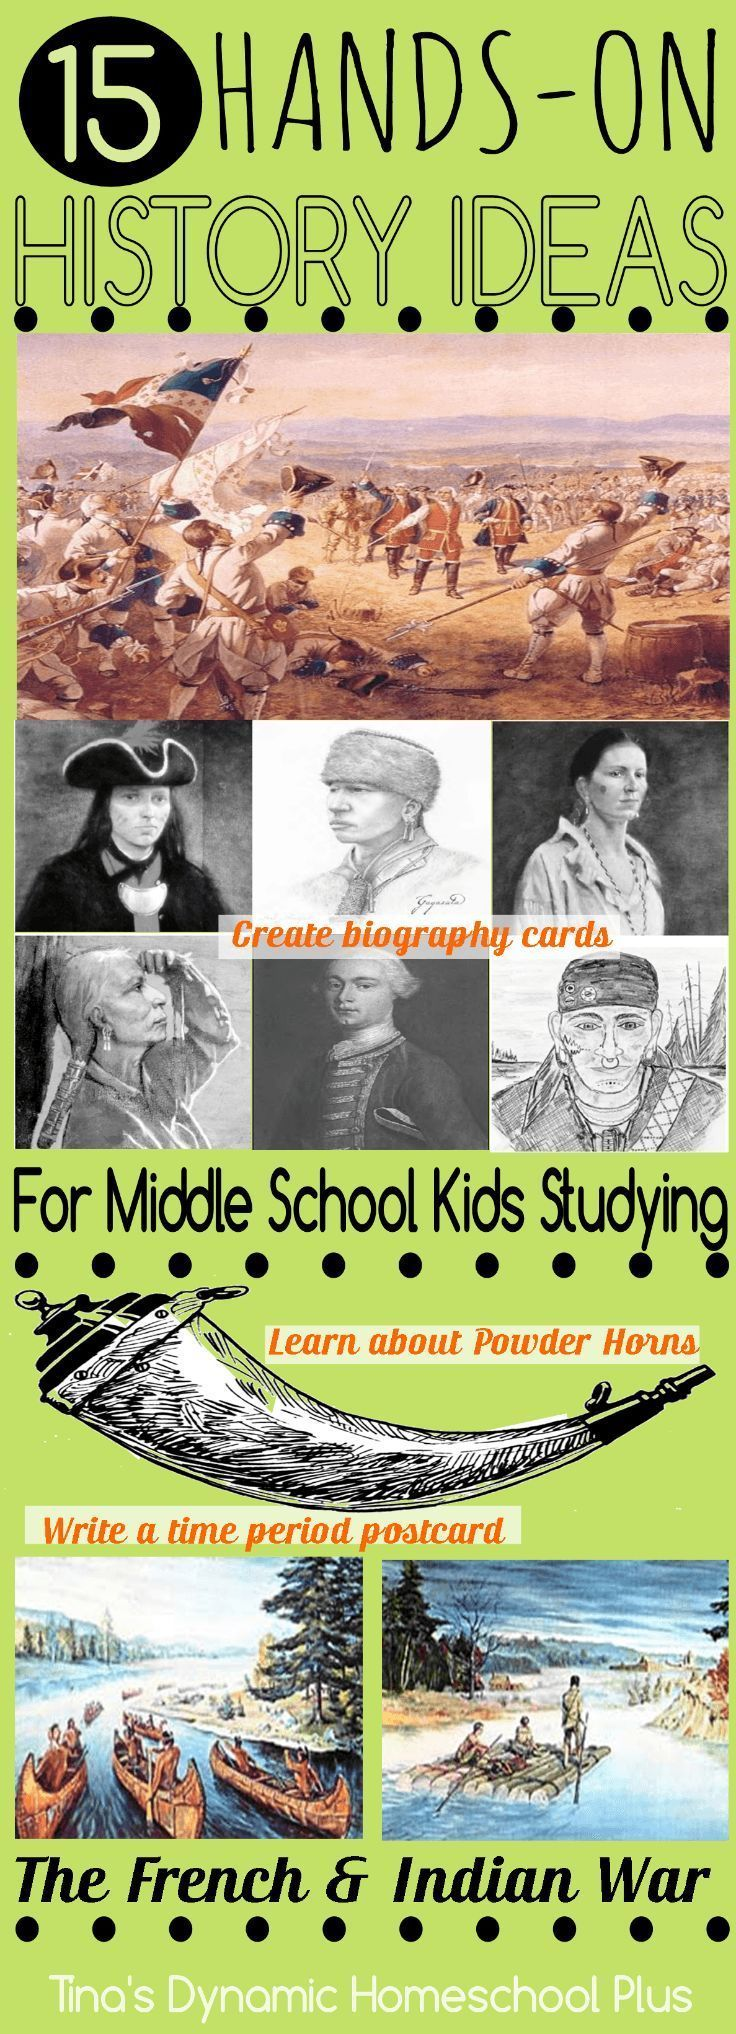 15 Hands-on History Ideas for Middle School Kids Studying The French and Indian War @ Tina's Dynamic Homeschool Plus